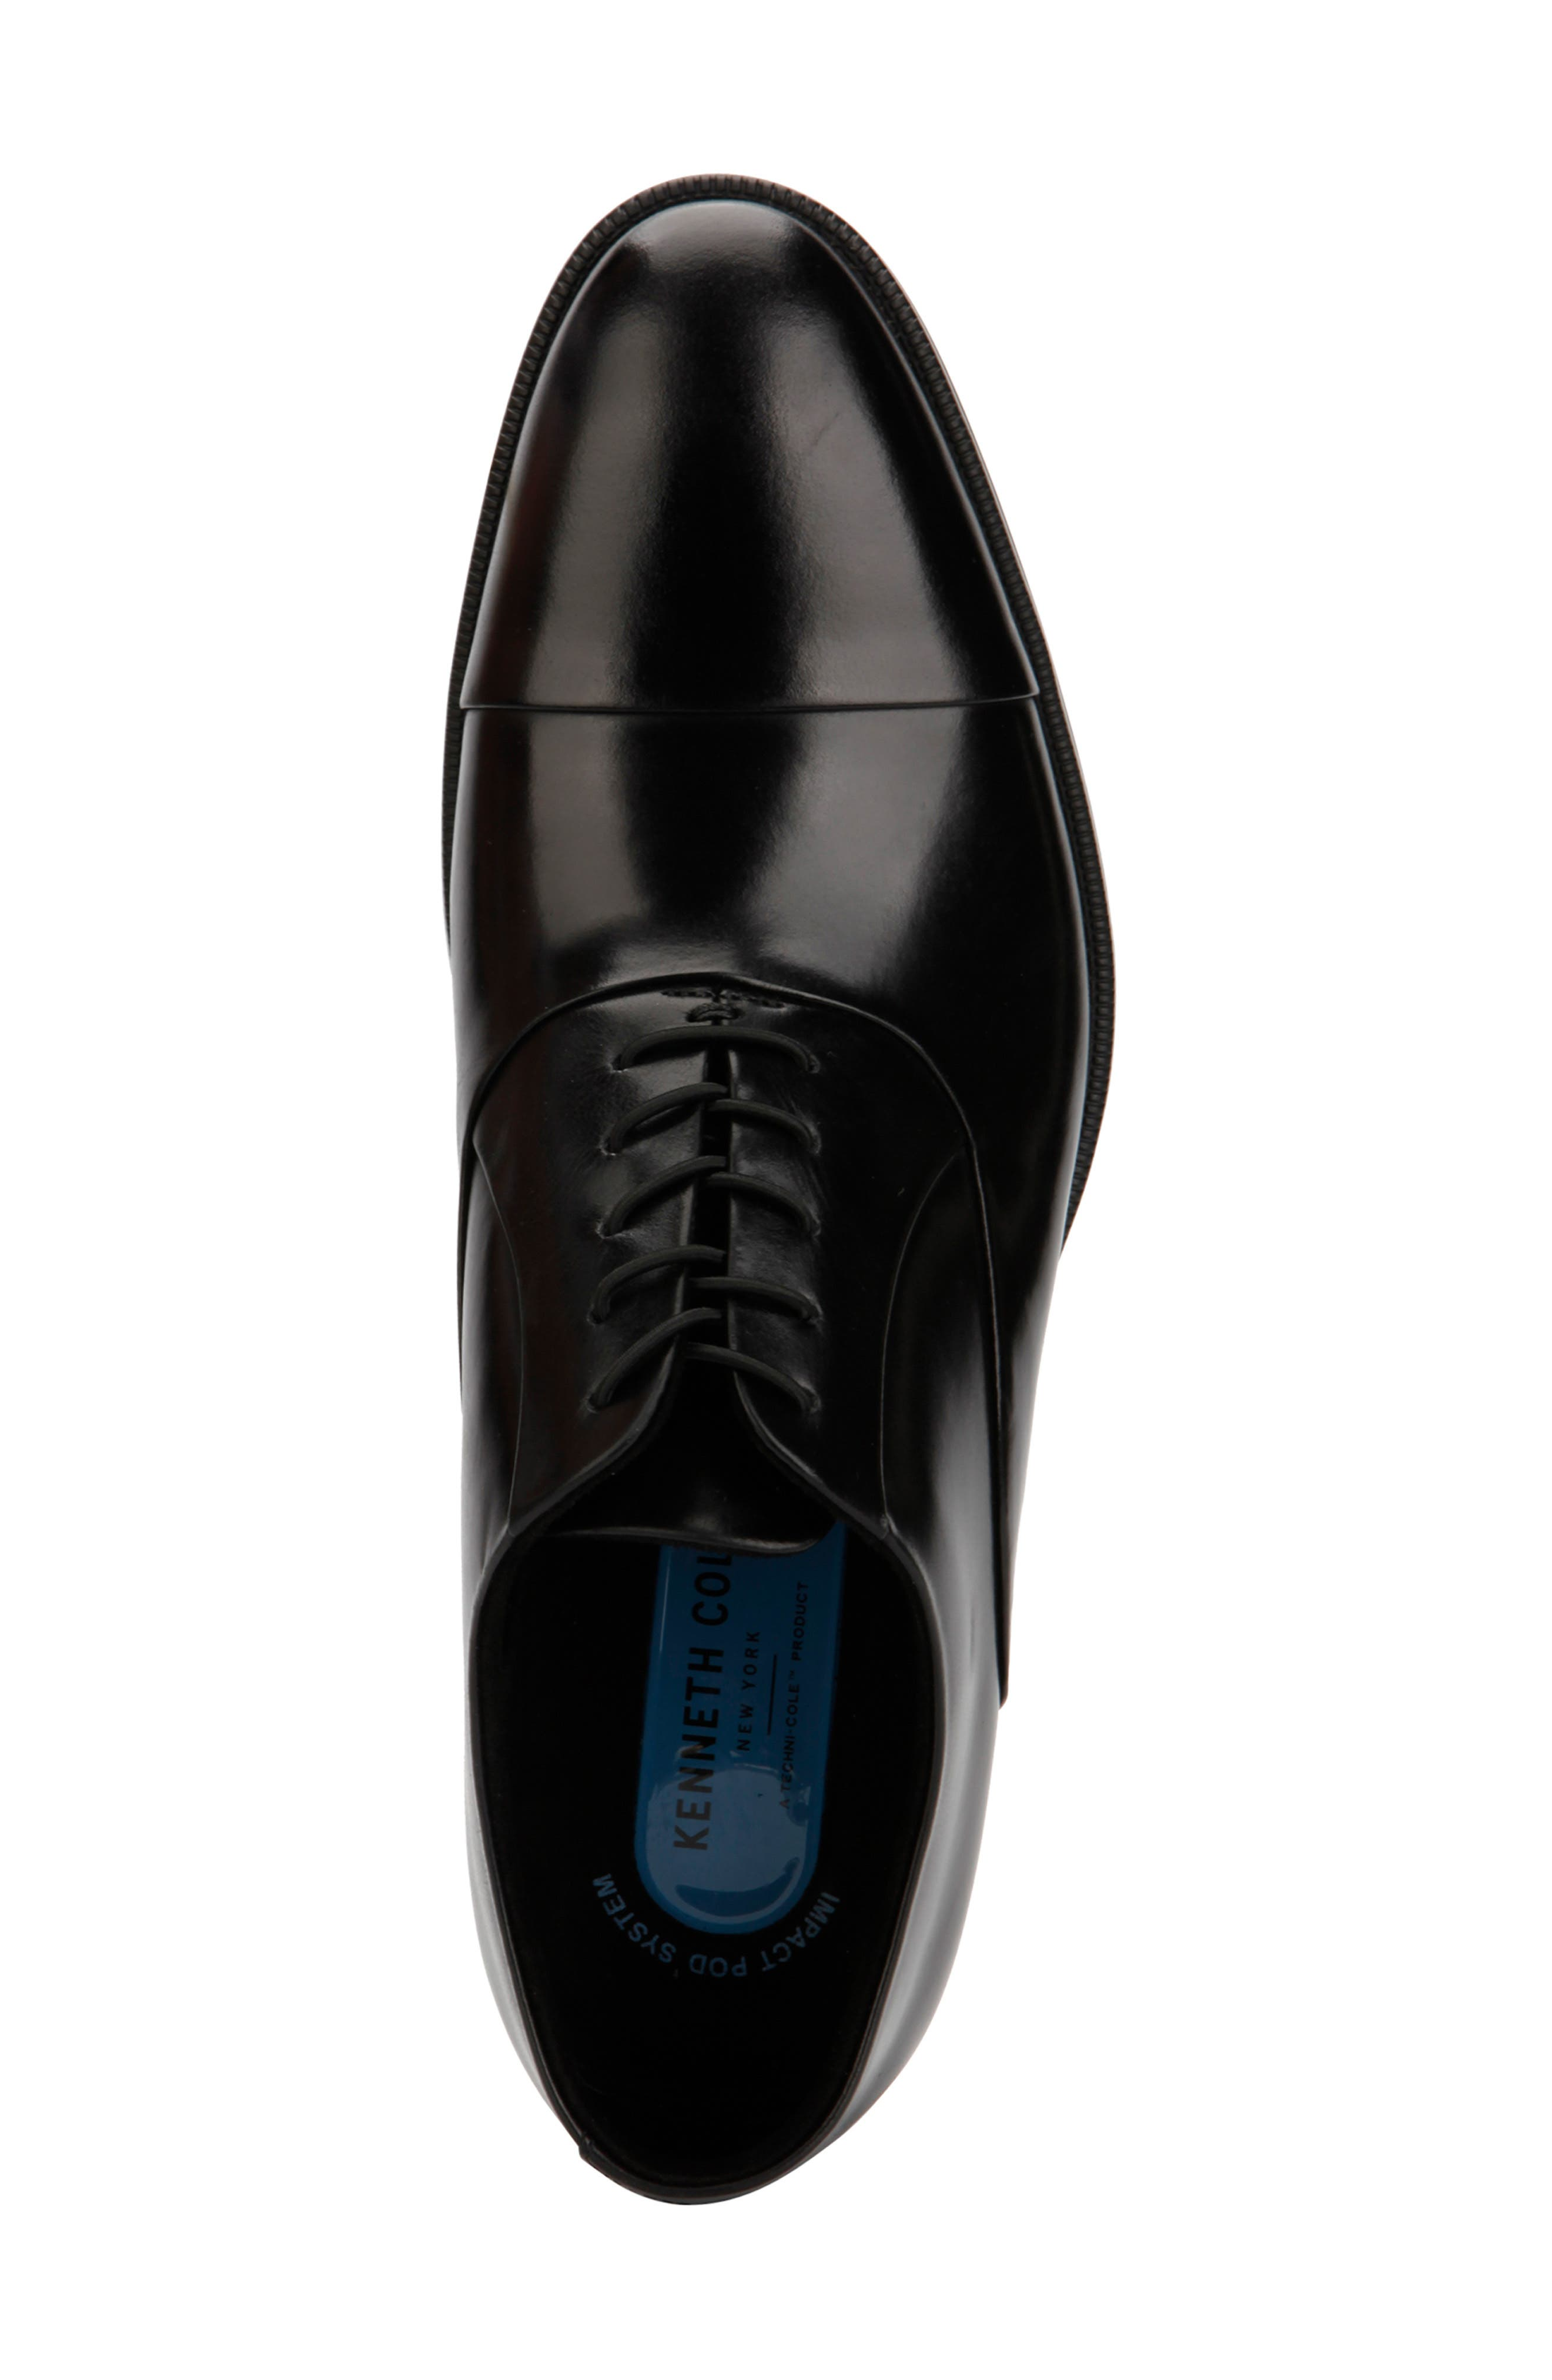 KENNETH COLE NEW YORK, Futurepod Cap Toe Oxford, Alternate thumbnail 3, color, BLACK LEATHER